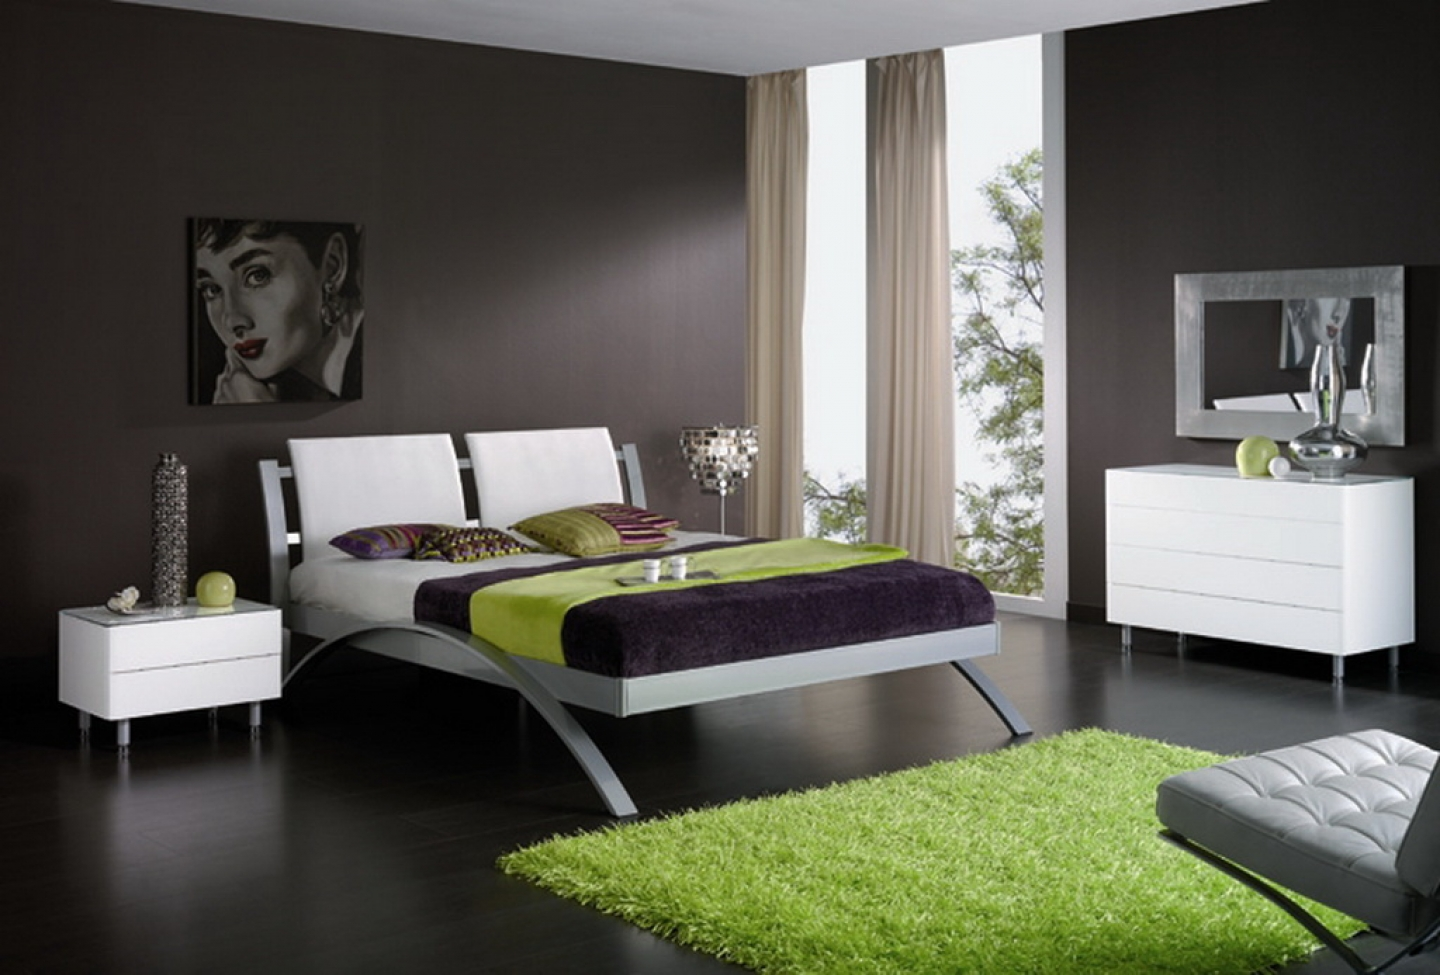 Single bed frame design - Bedroom Dazzling Black Themed Minimalist Bedroom Design Inspiration With Comfortable White Single Bed On Combined Unique Silver Bed Frame And Modern White